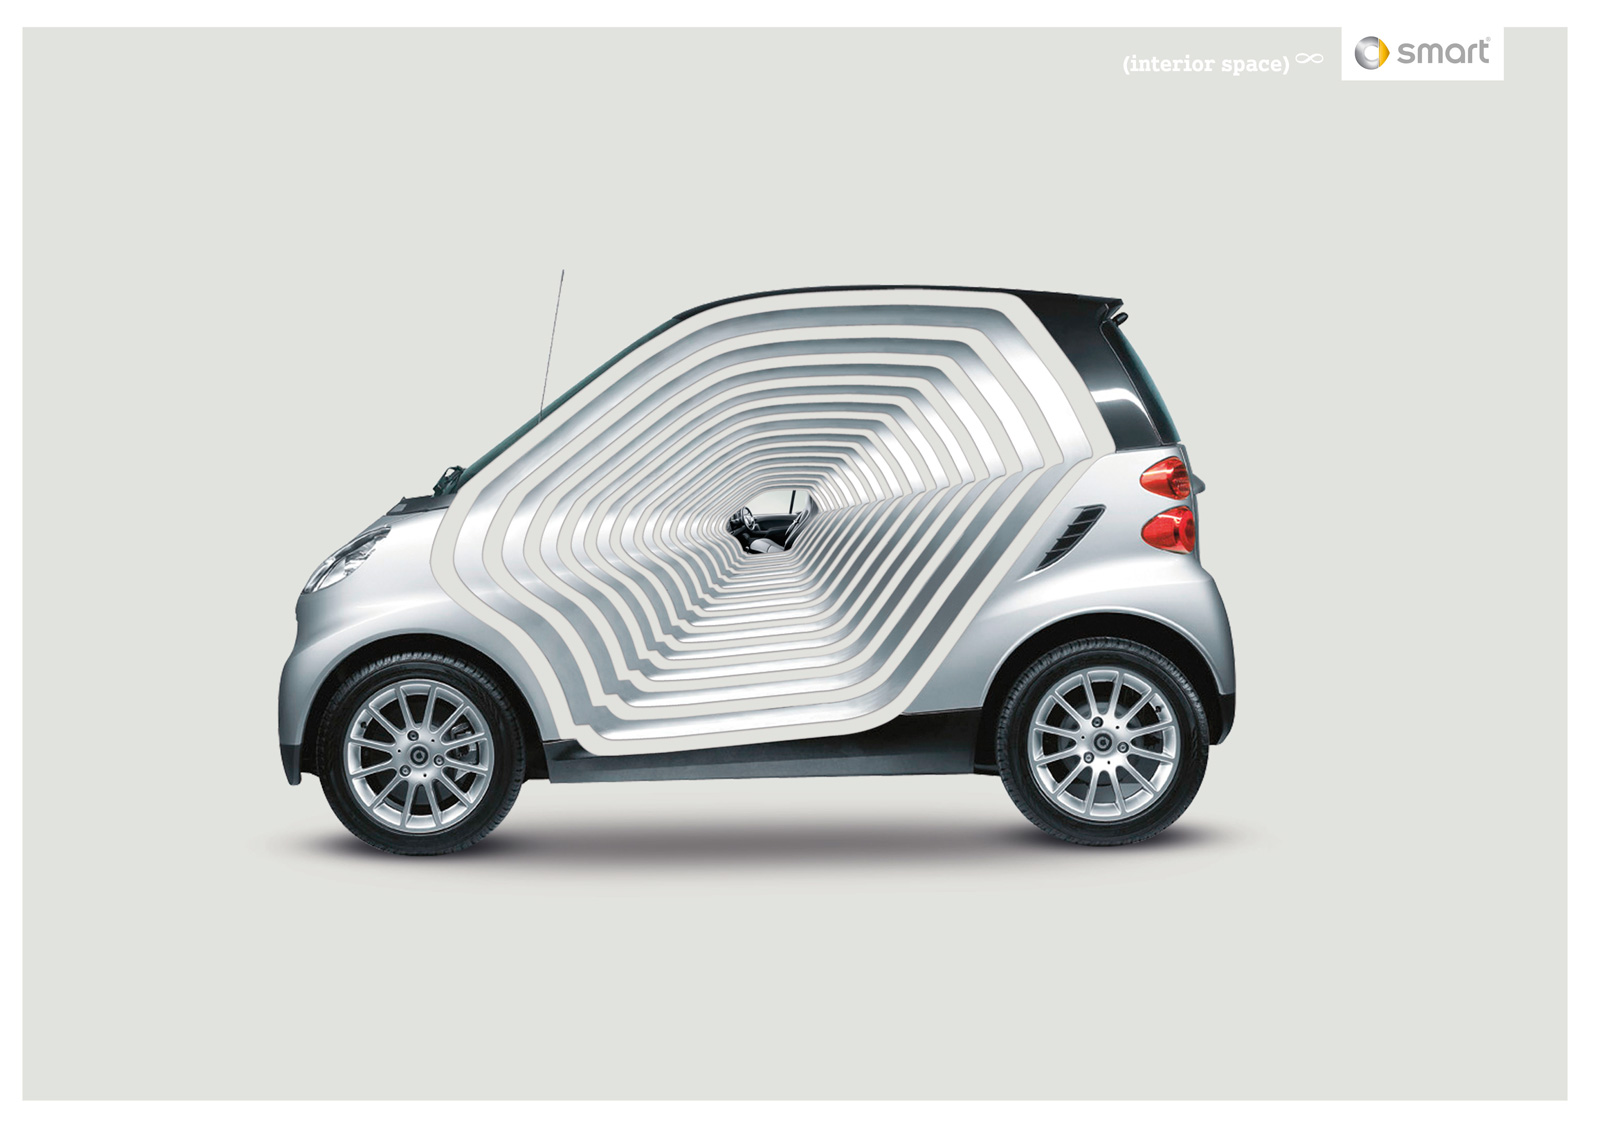 Smart car ad too damn smart for its own good